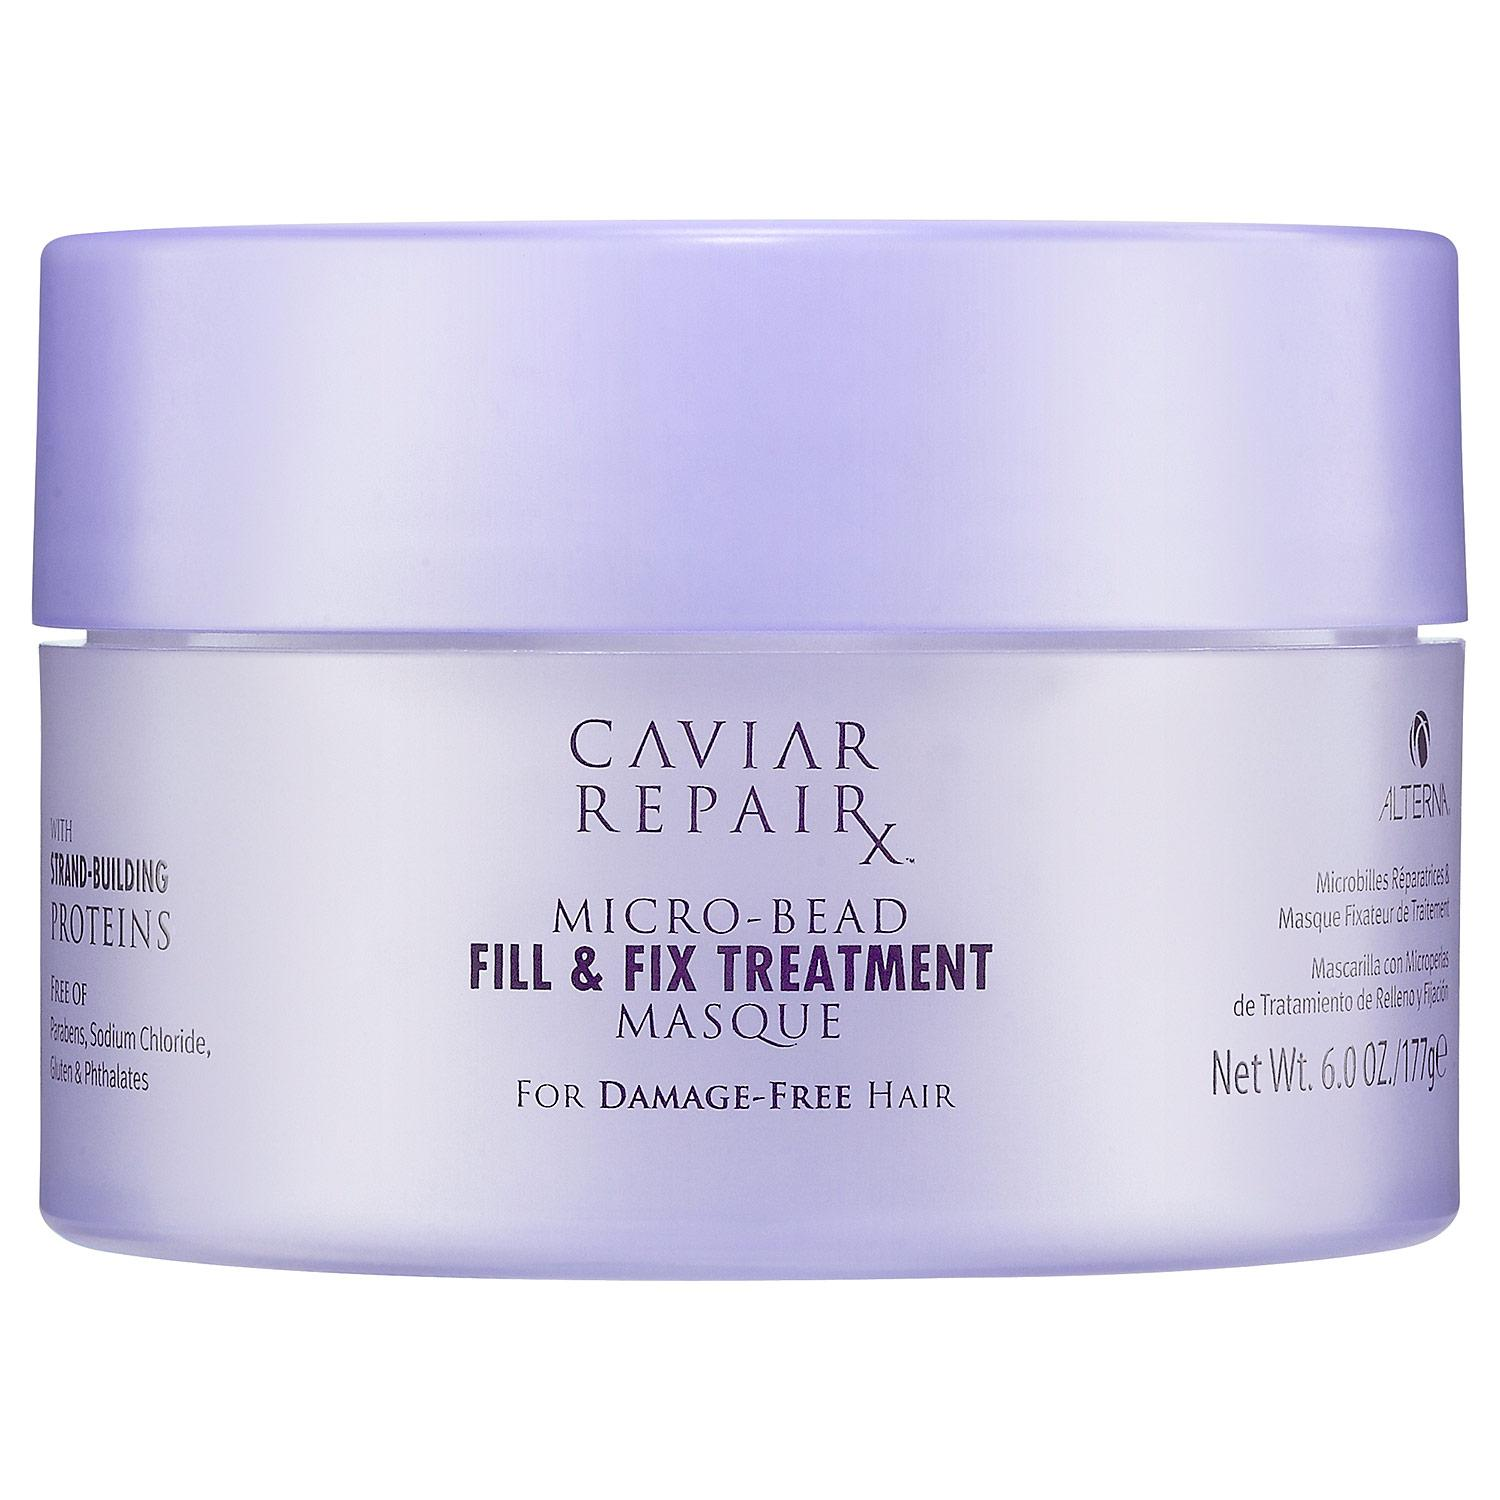 Caviar Repair RX Micro-Bead Fill & Fix Treatment Masque